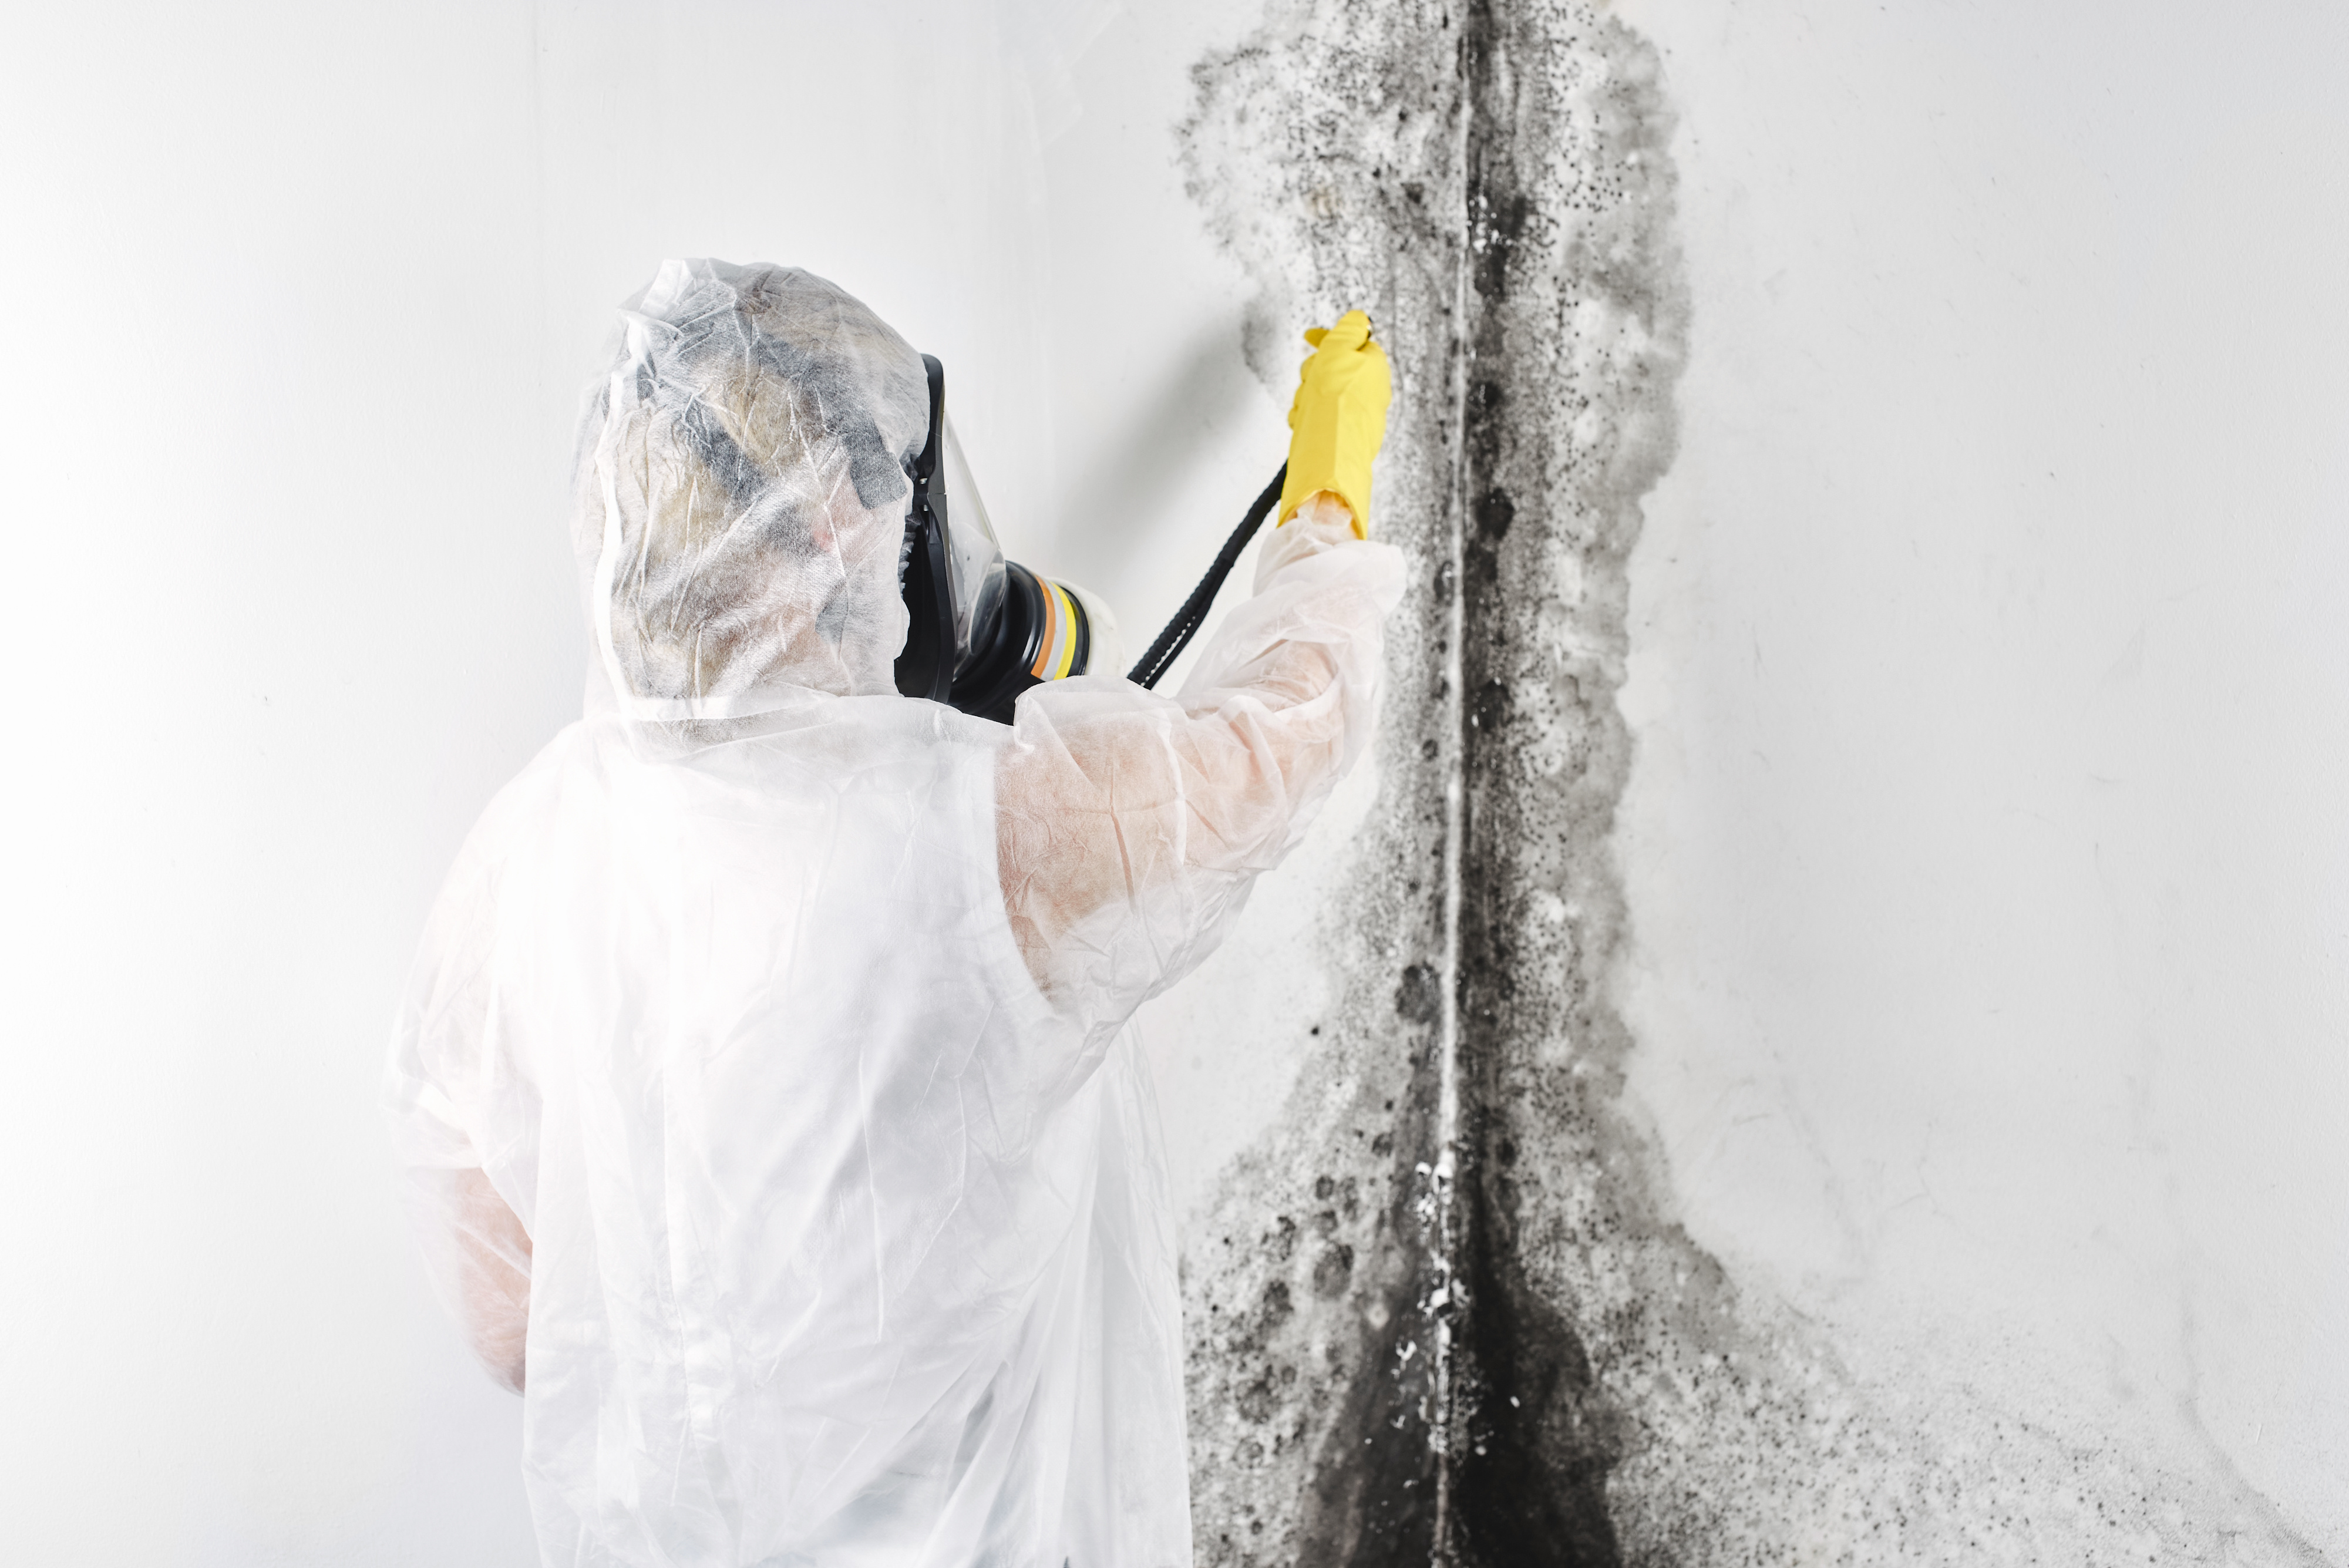 A Professional Disinfector In Overalls Processes The Walls From Mold Removal Of Black Fungus Apartment And House Aspergillus